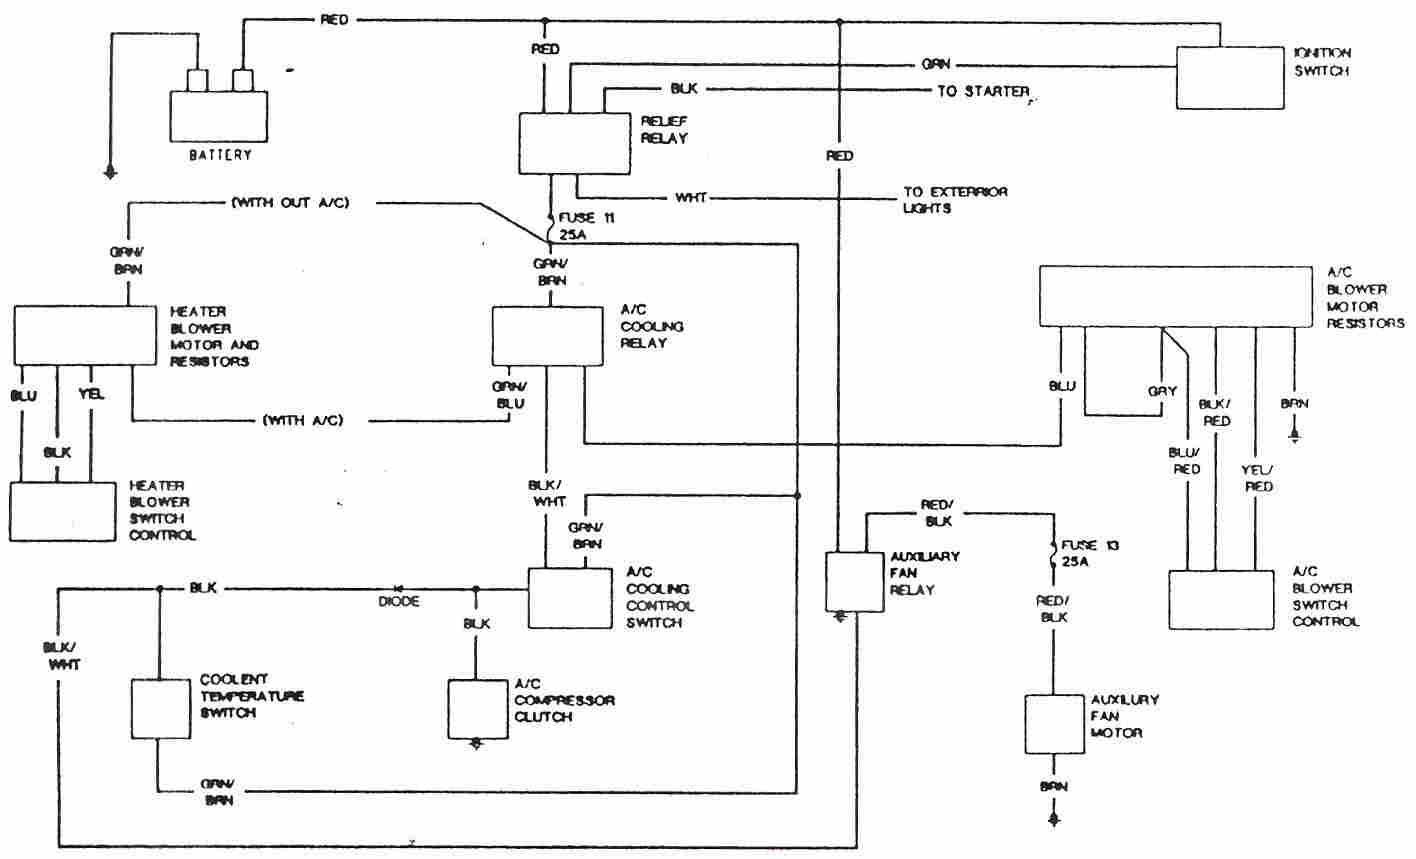 ford f800 wiring diagram air conditioning schematic diagramford f800 wiring  diagram air conditioning wiring diagram ford